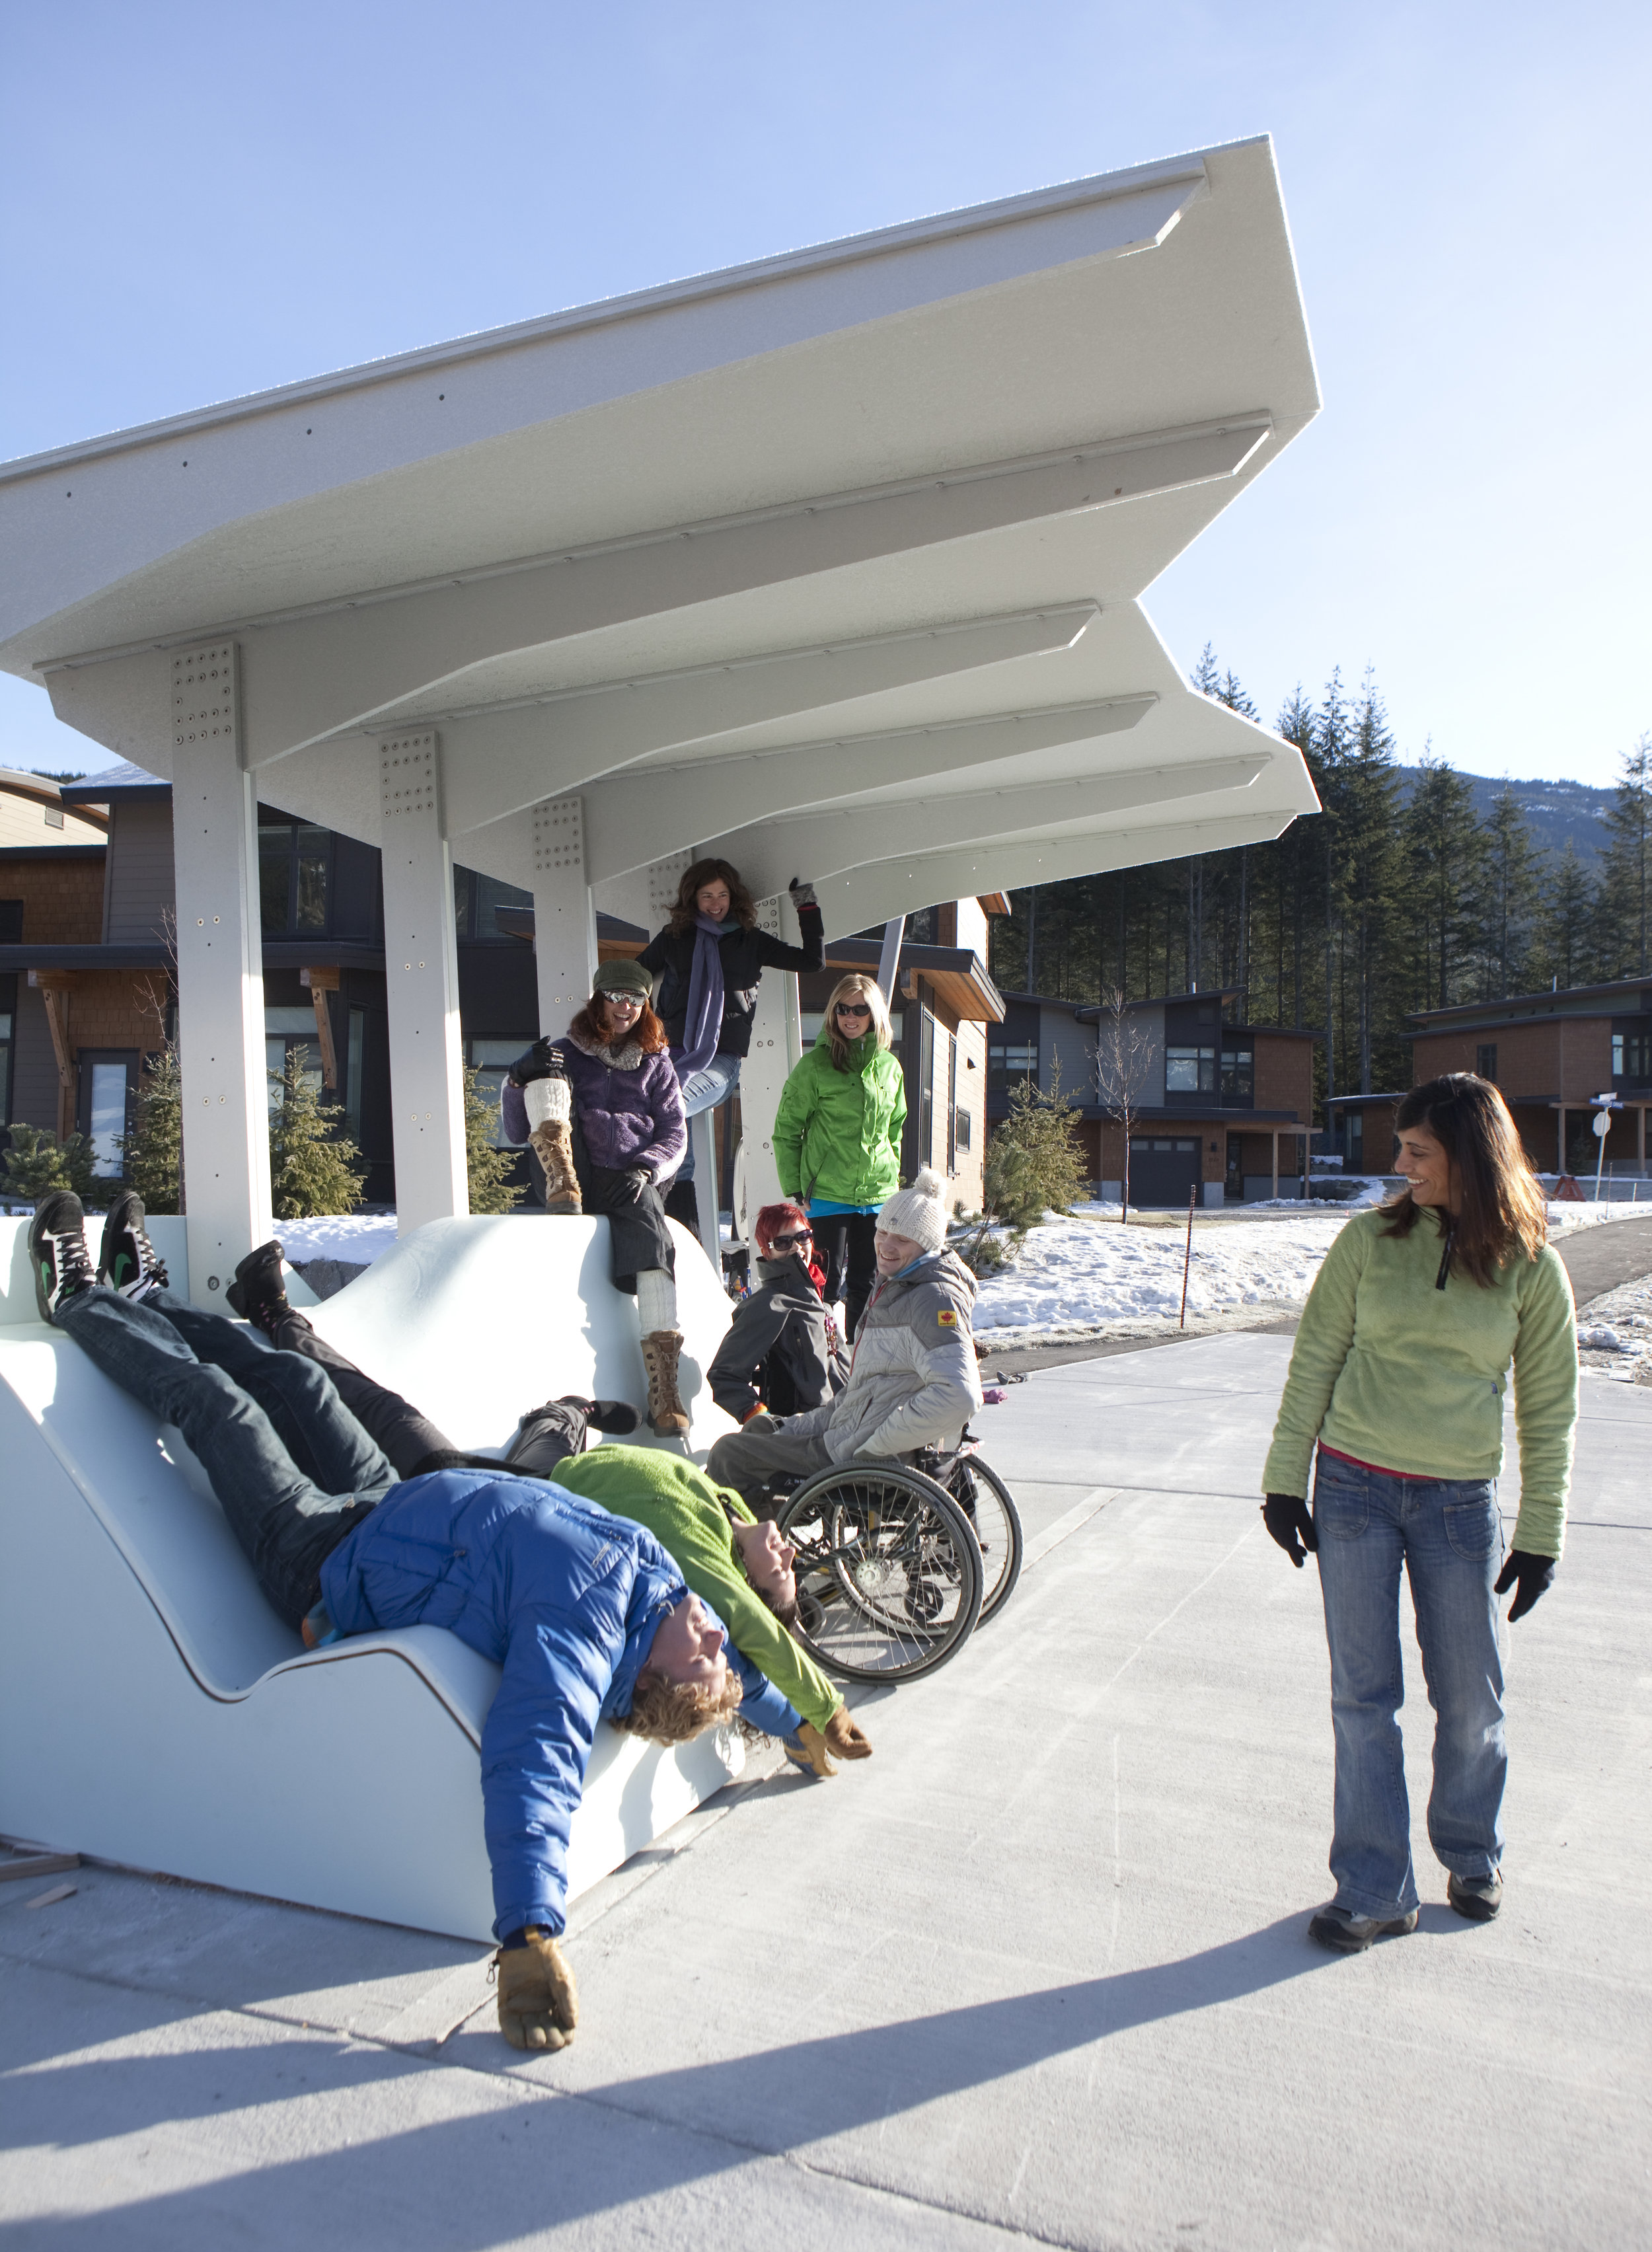 2010 Olympic Bus Shelter